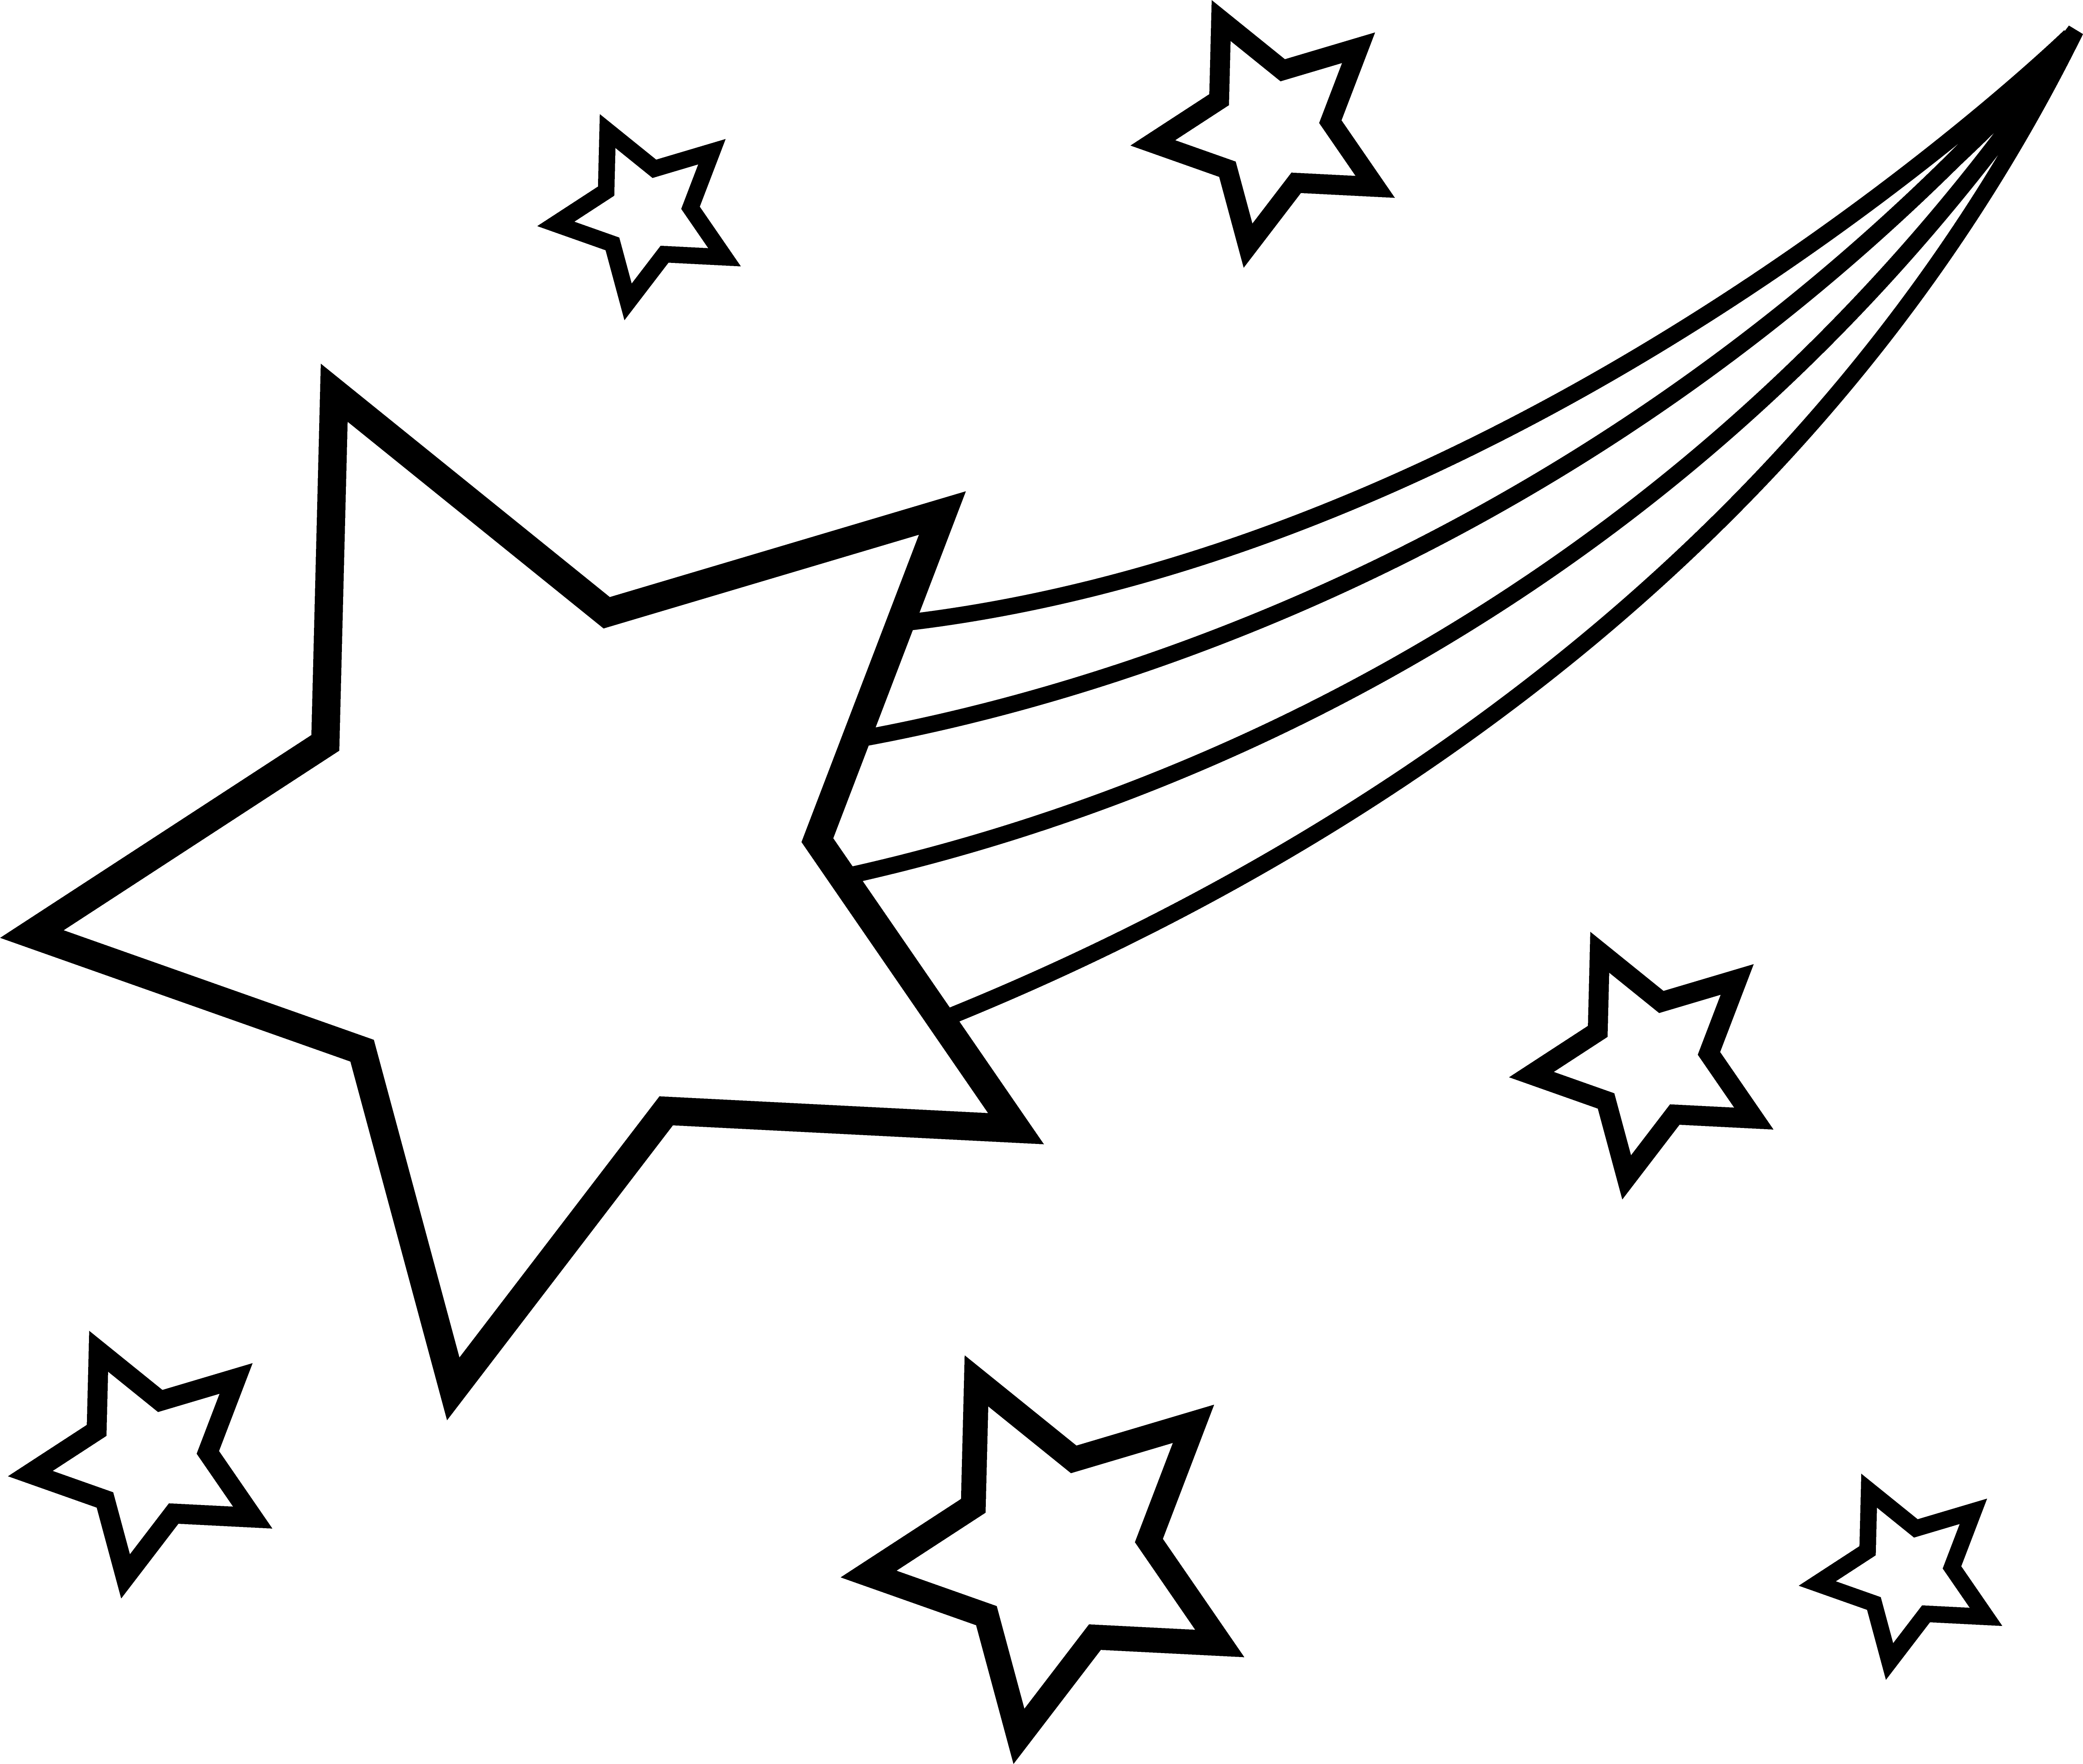 colouring pages stars free printable star coloring pages for kids colouring pages stars